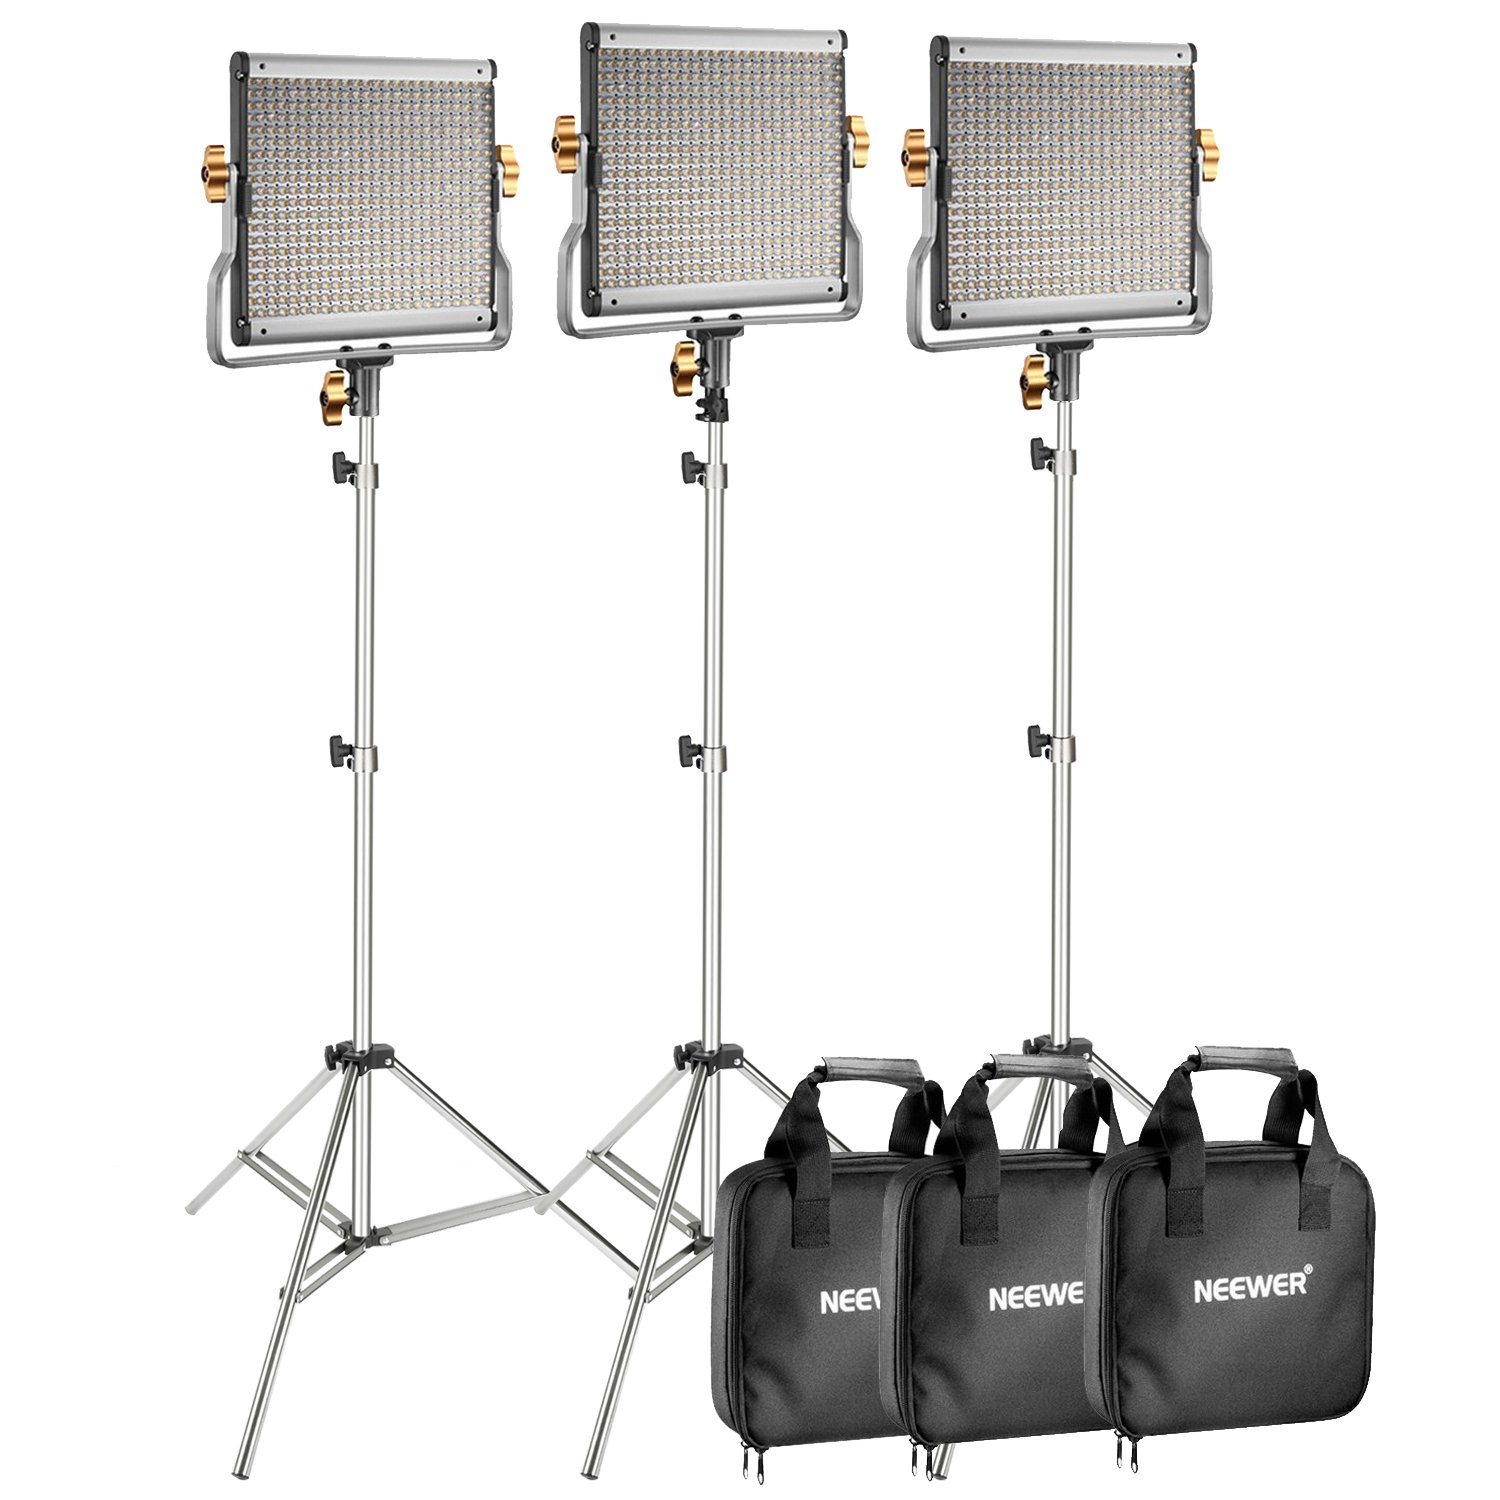 Neewer 3-Pack 480 LED Video Light with 78.7-Inch Stainless Steel Light Stand Kit: Dimmable Bi-Color LED Panel with U Bracket (3200-5600K, CRI 96+) for Photo Studio Portrait, YouTube Video Photography